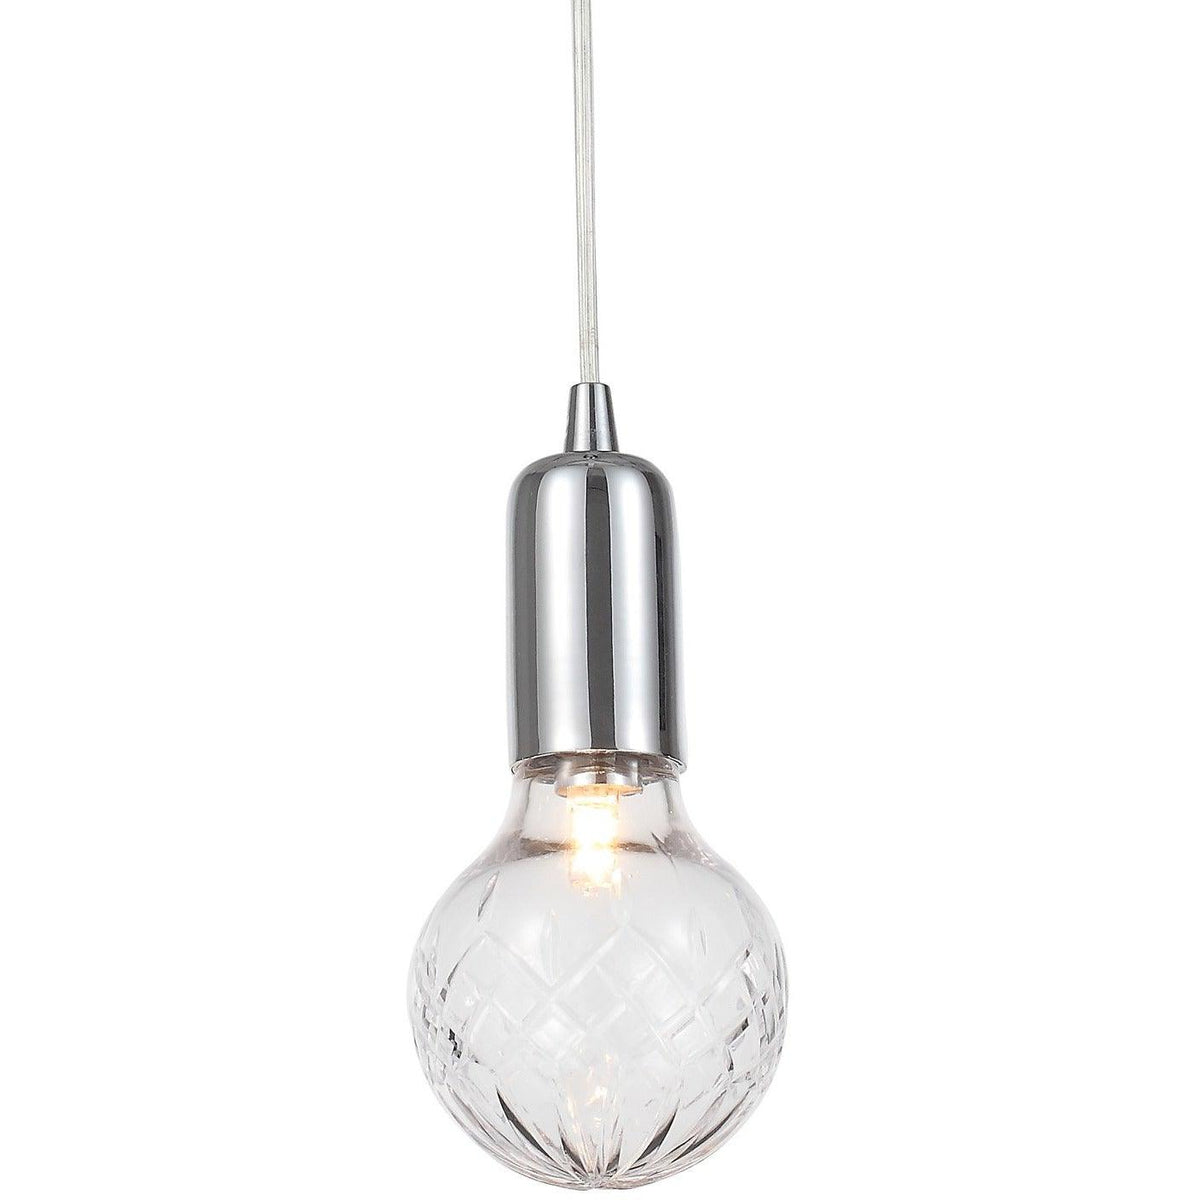 Crystorama - 200-CH - One Light Pendant - Essex - Polished Chrome